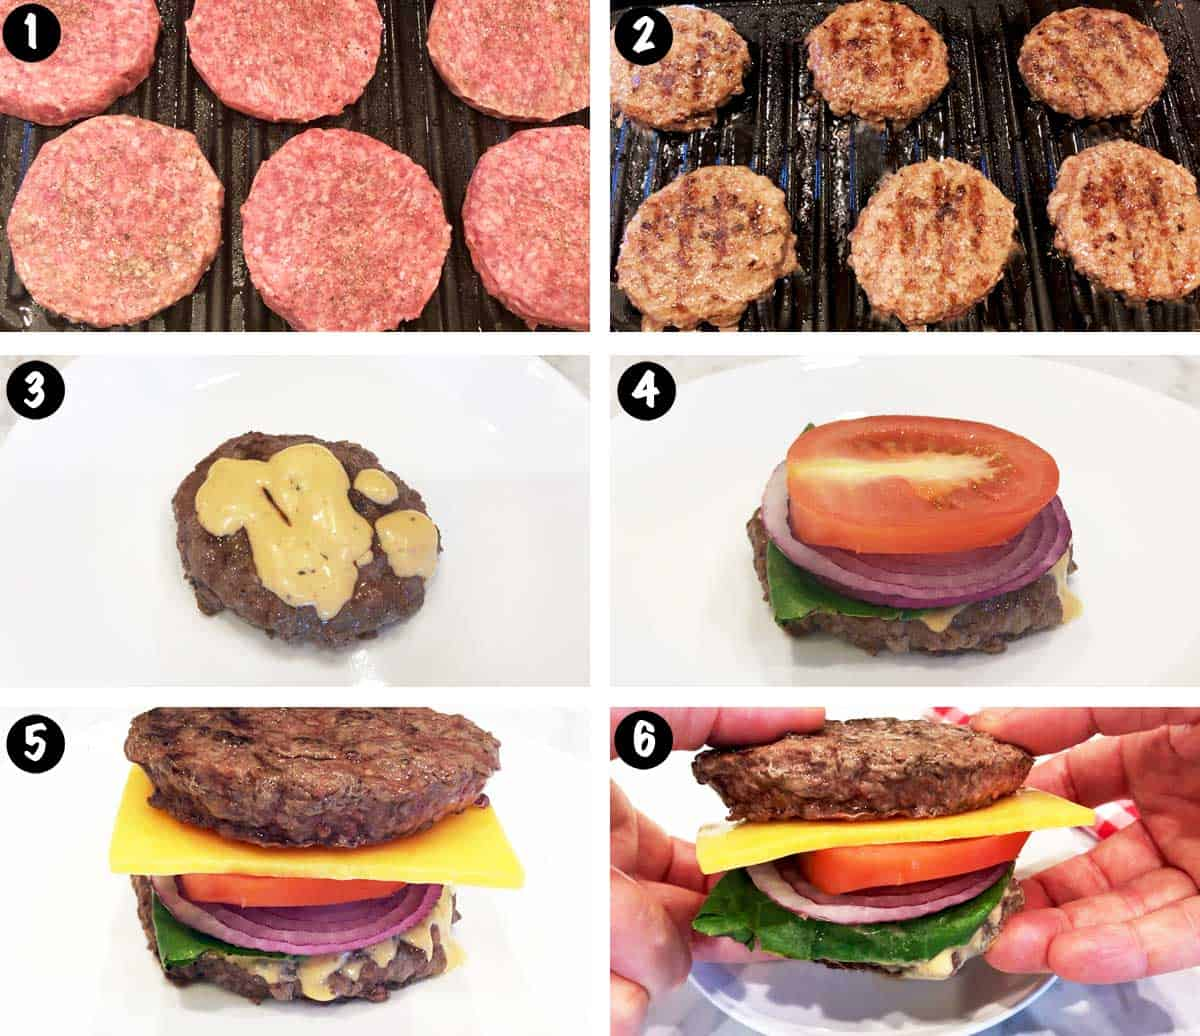 A photo collage showing the steps for making a bunless burger.